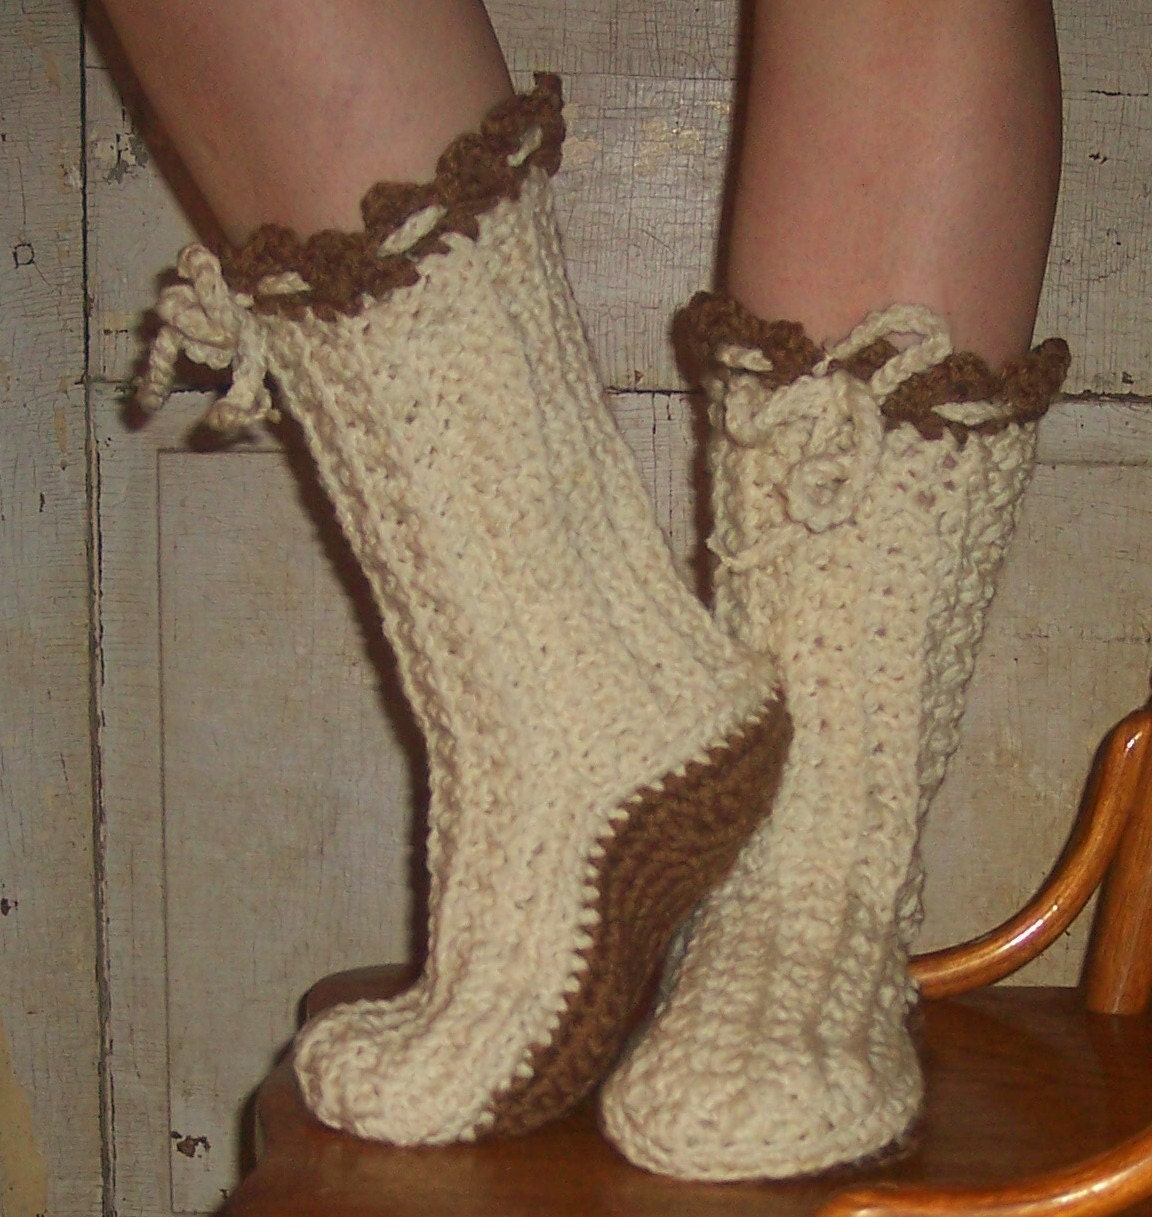 Crochet Free Patterns Boots : Crochet Pattern Boots DELICIOUS CROCHET